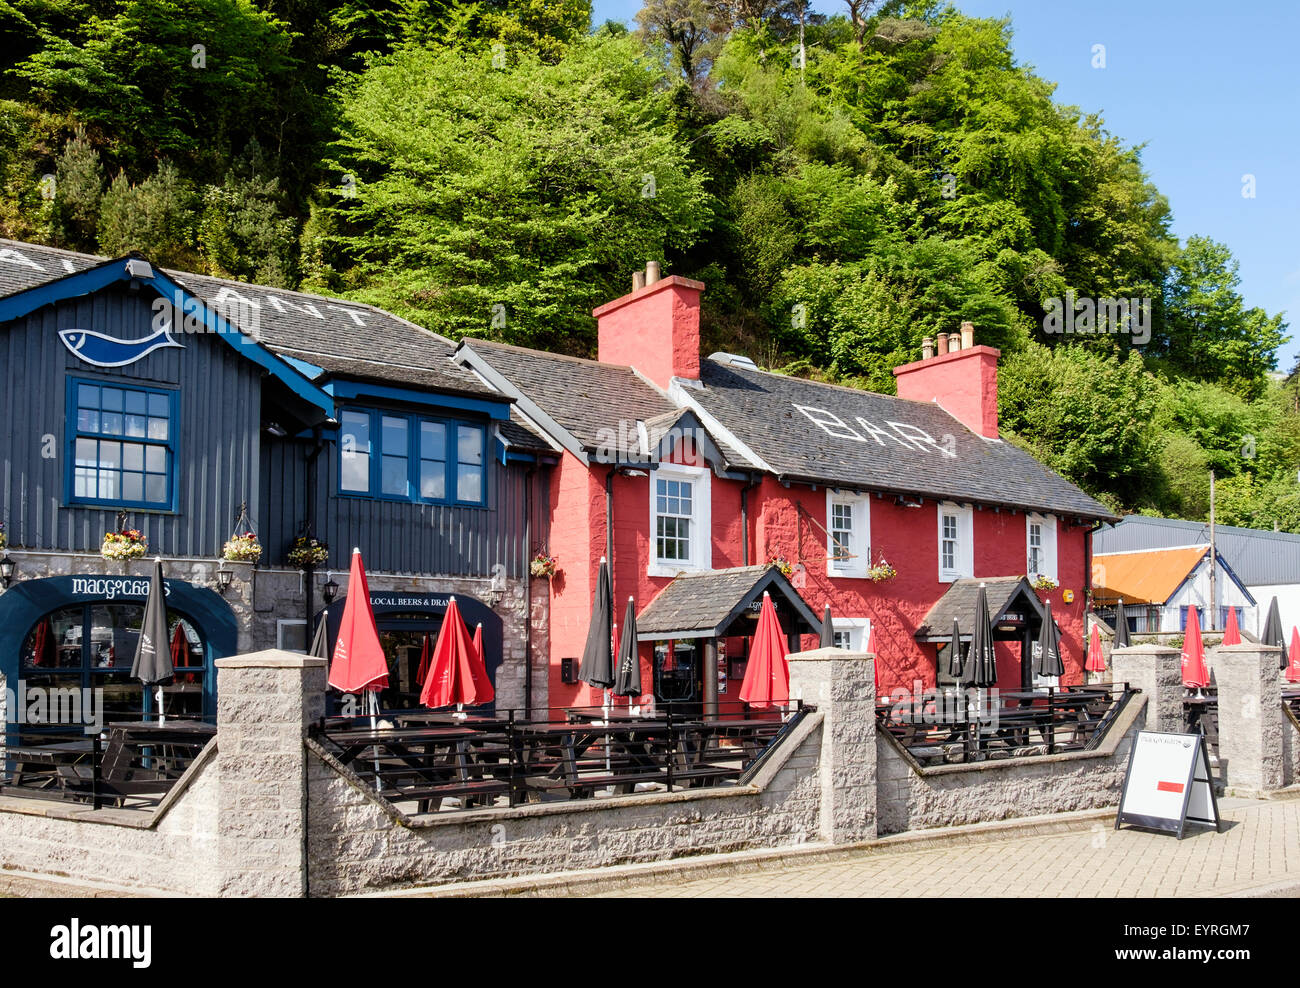 MacGochans restaurant and bar in Tobermory, Isle of Mull, Argyll & Bute, Inner Hebrides, Western Isles, Scotland, - Stock Image